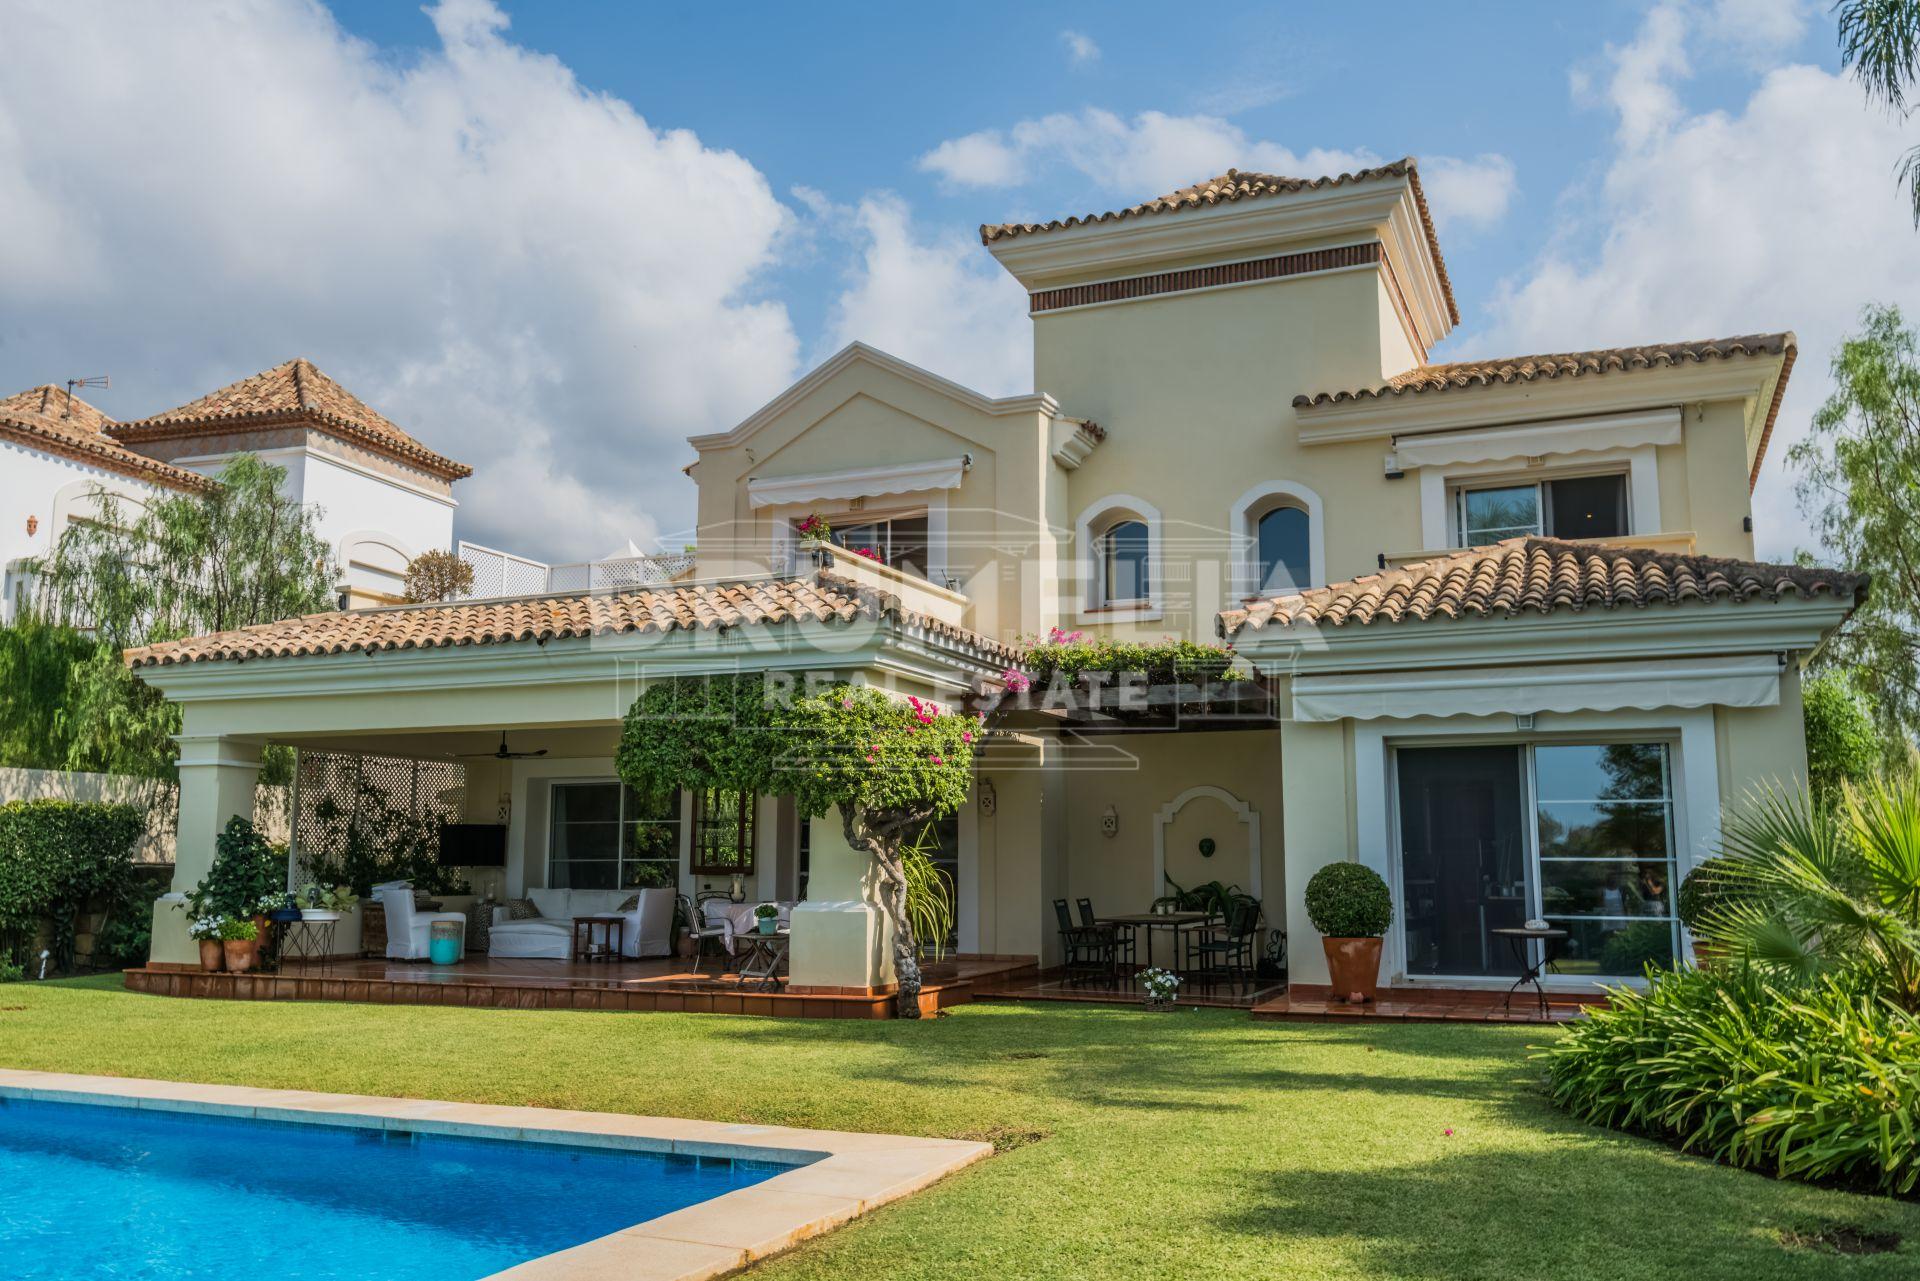 Benahavis, Beautiful Frontline Golf Mediterranean Luxury Villa in La Quinta, Benahavis